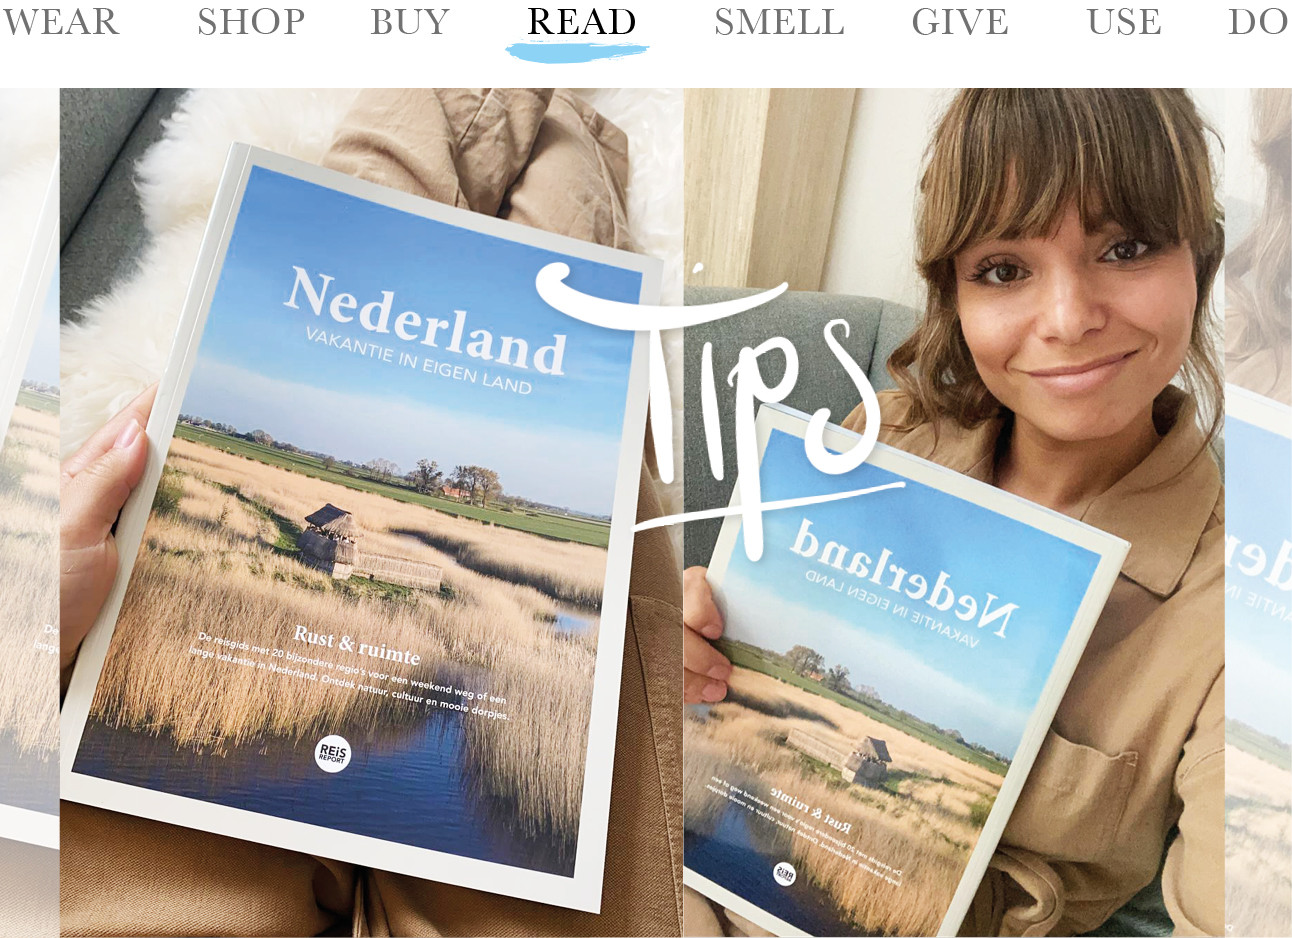 today we read nederland vakantie in eigen land